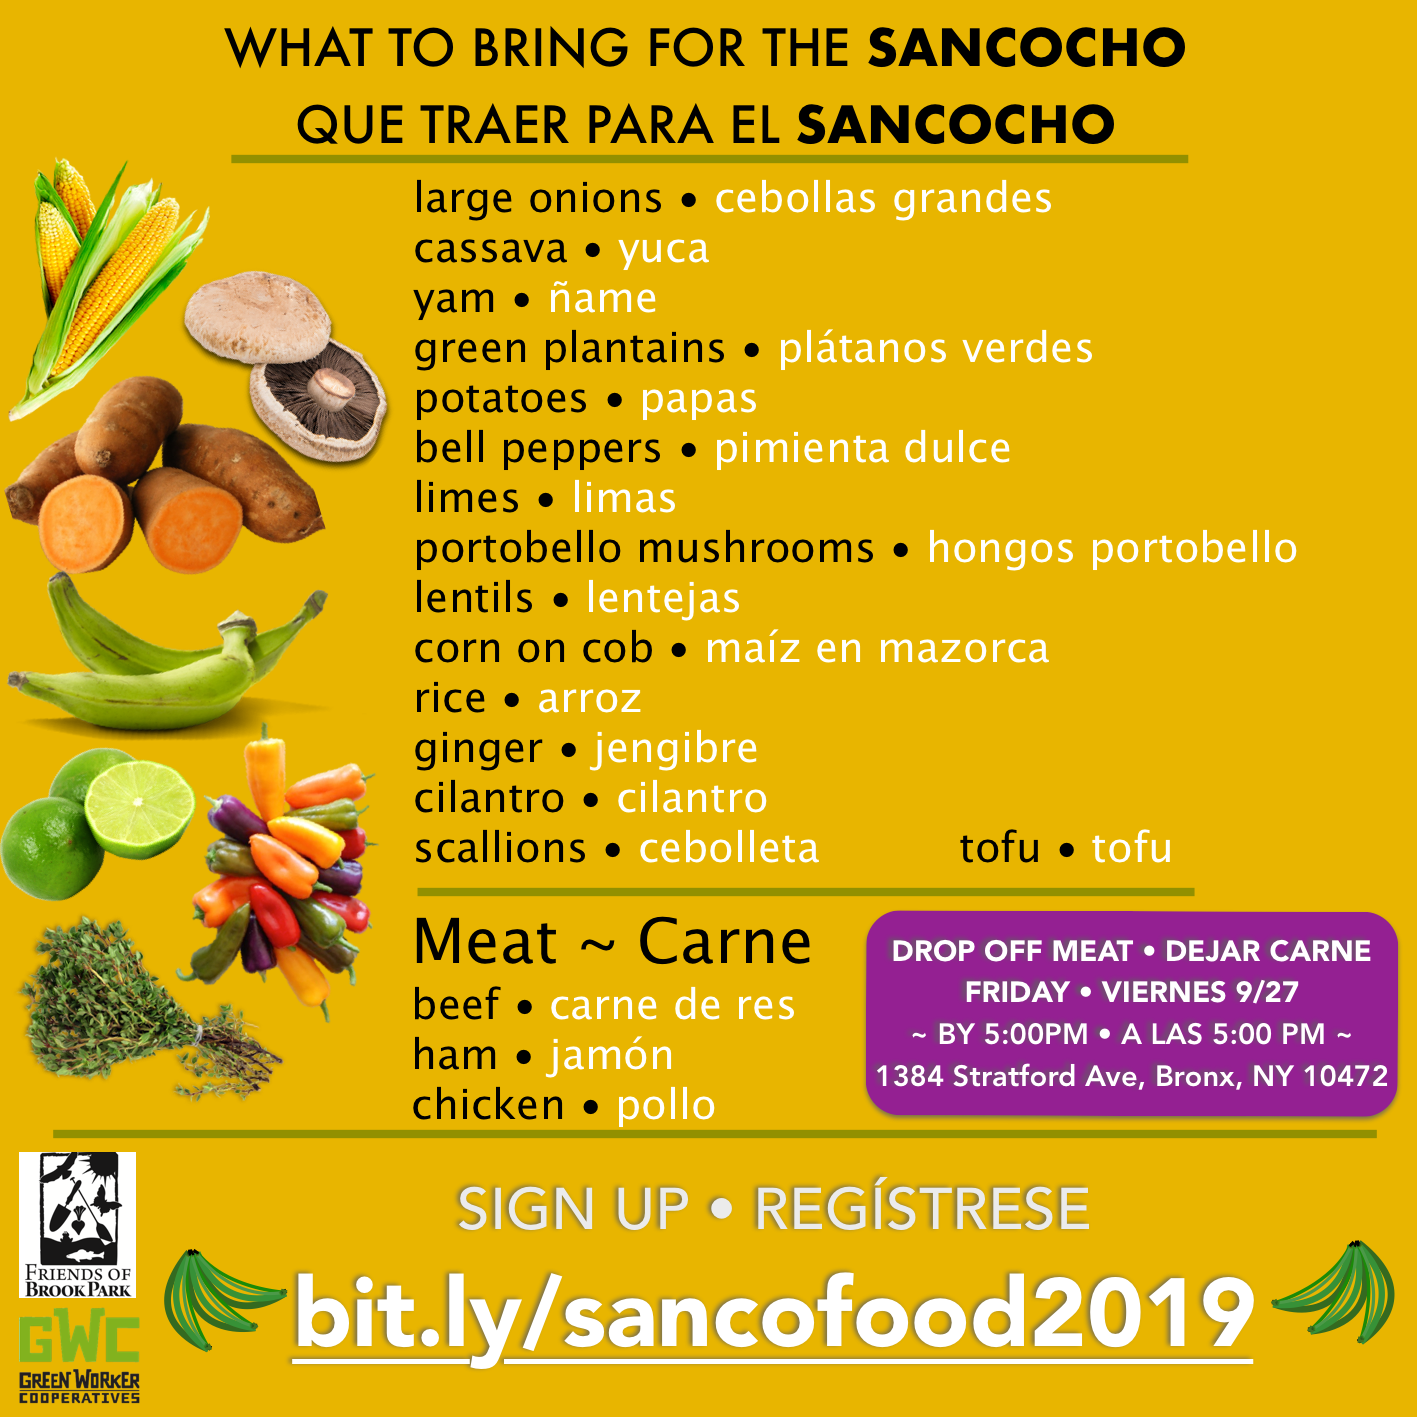 sanco_food_item_list_meme_SPA-ENG_1.png